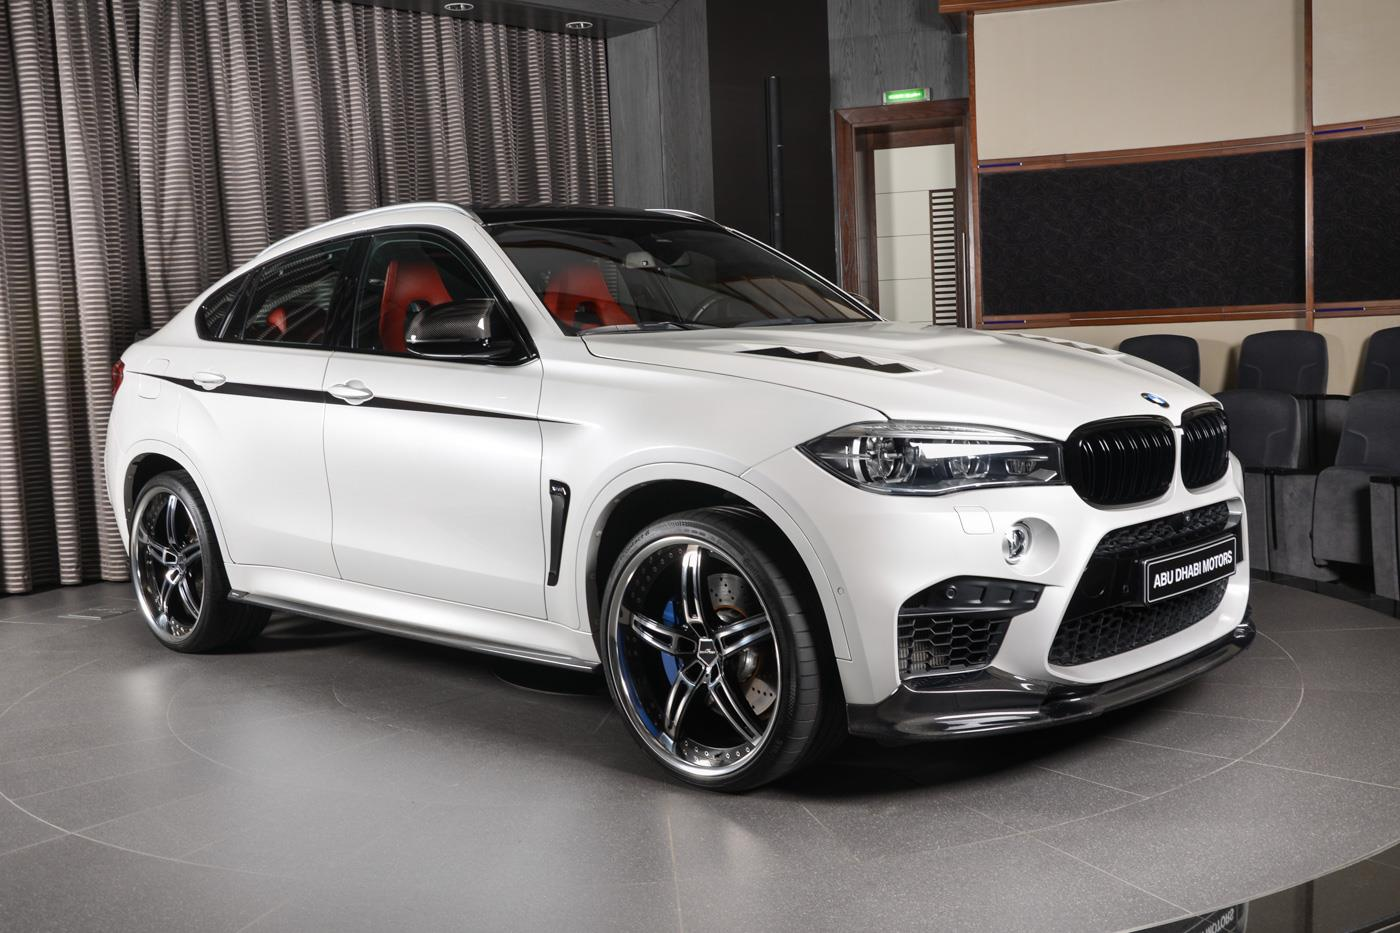 BMW X6 M Has All The Tuning Bits In Abu Dhabi